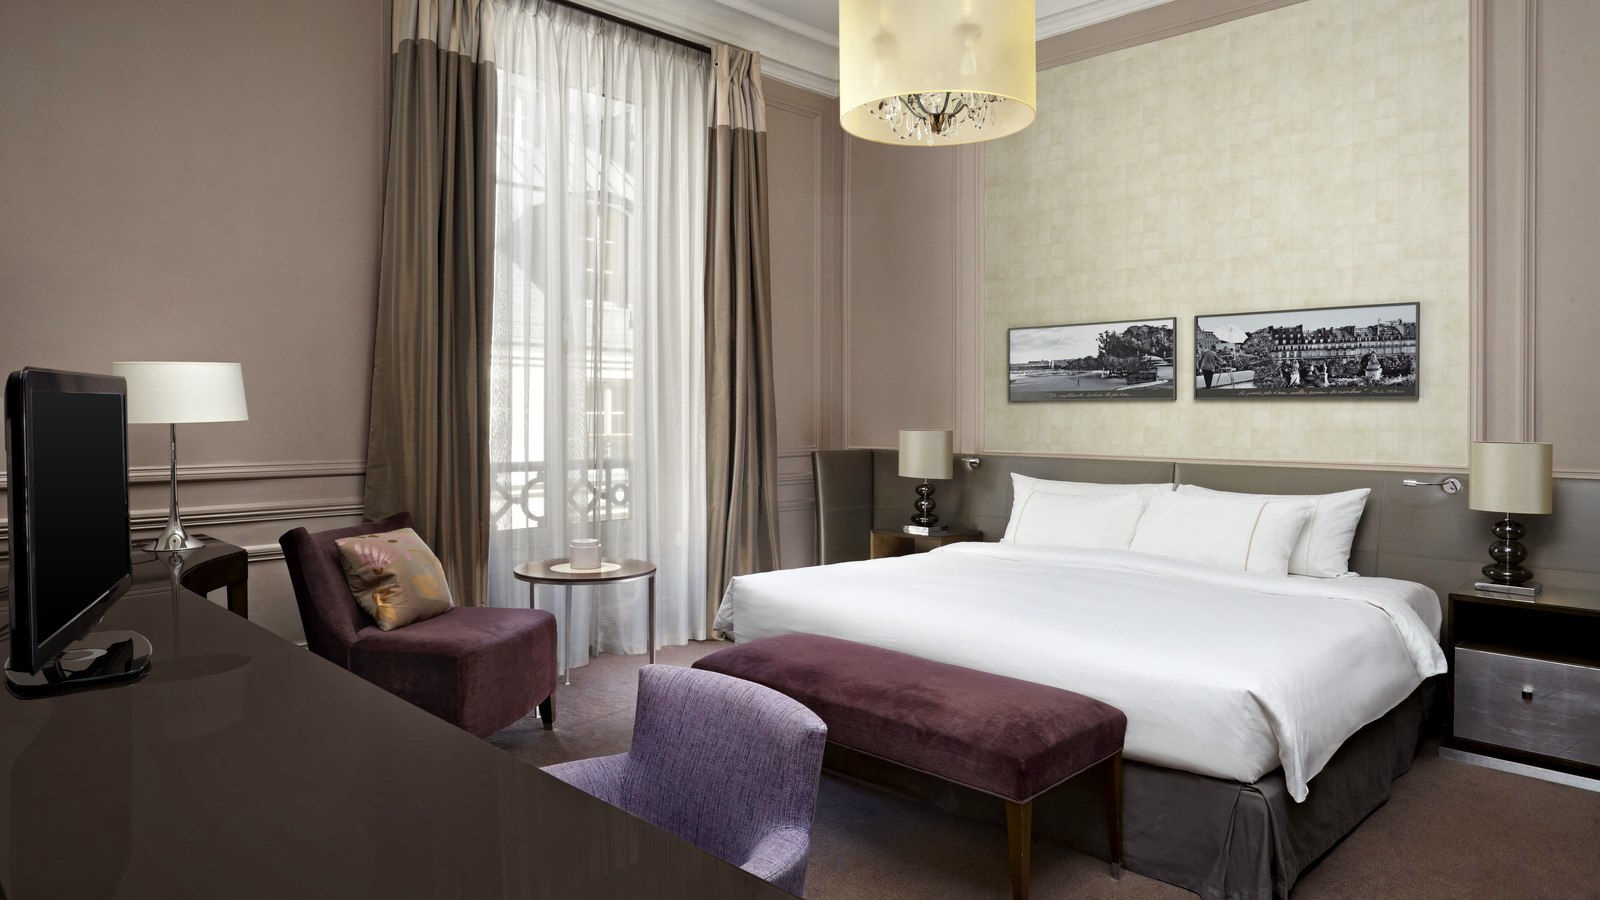 Deluxe Room in The Westin Paris - Vendôme